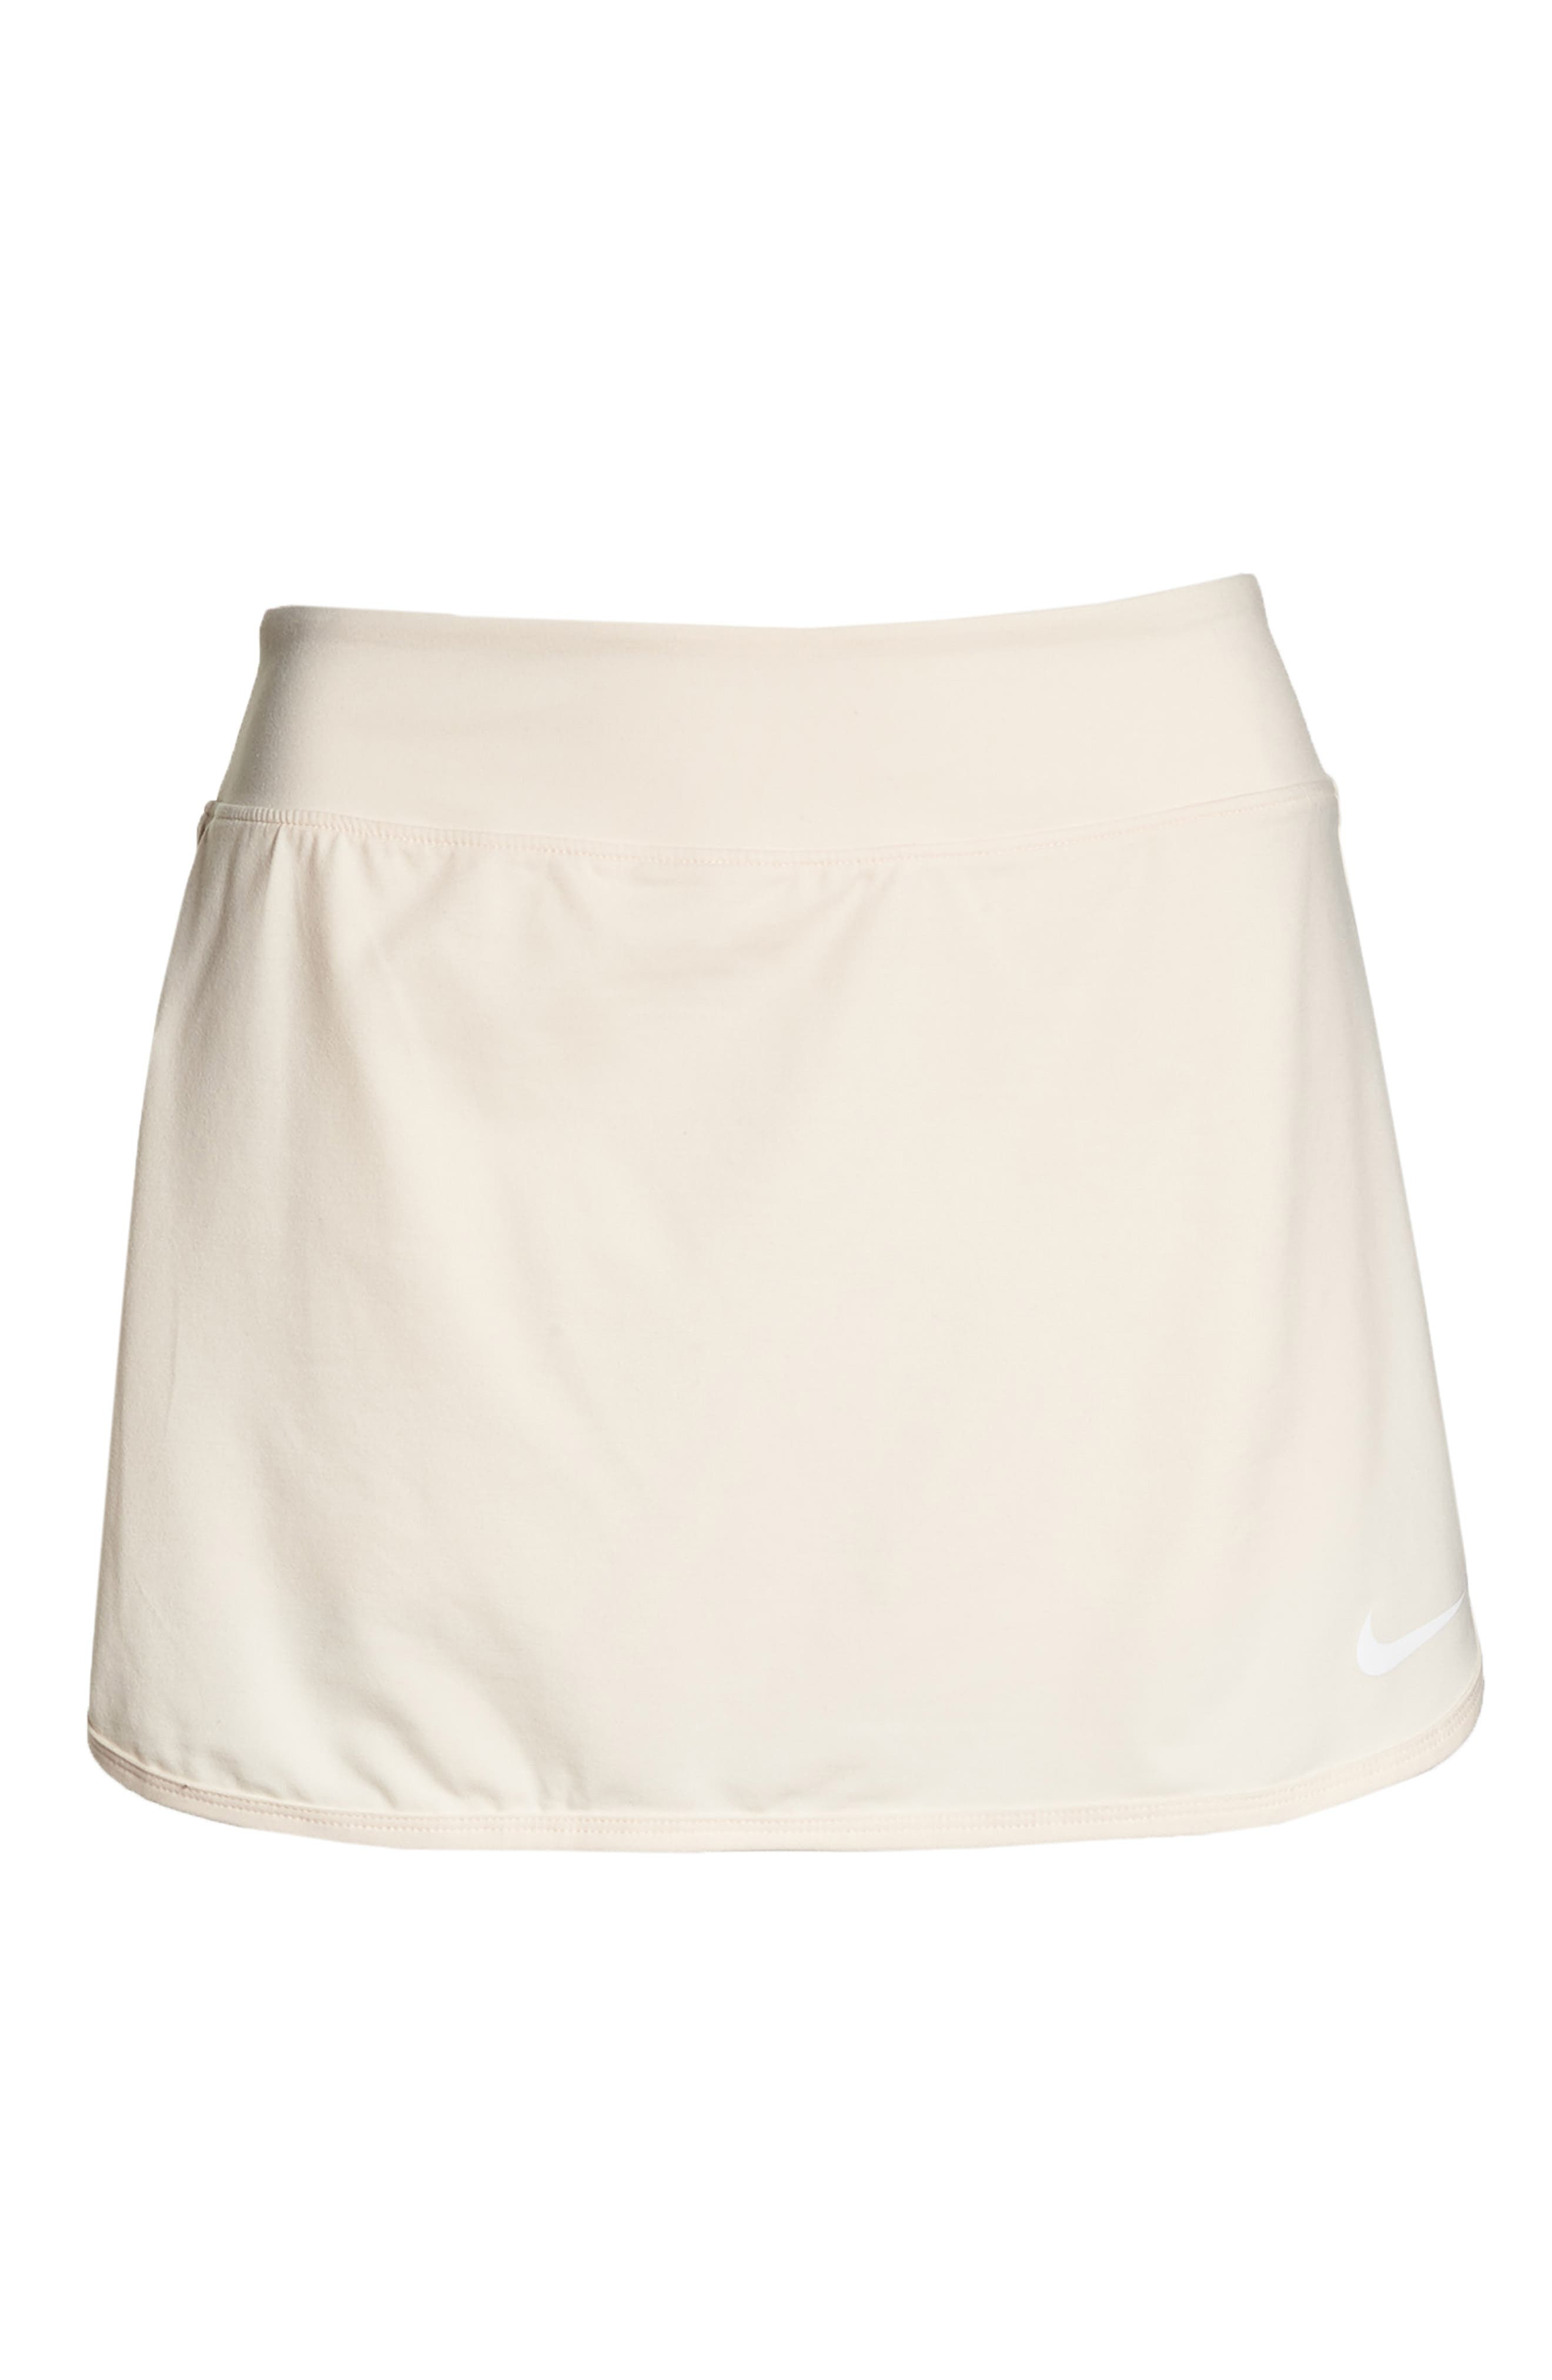 'Pure' Dri-FIT Tennis Skirt,                             Alternate thumbnail 7, color,                             GUAVA ICE/ WHITE